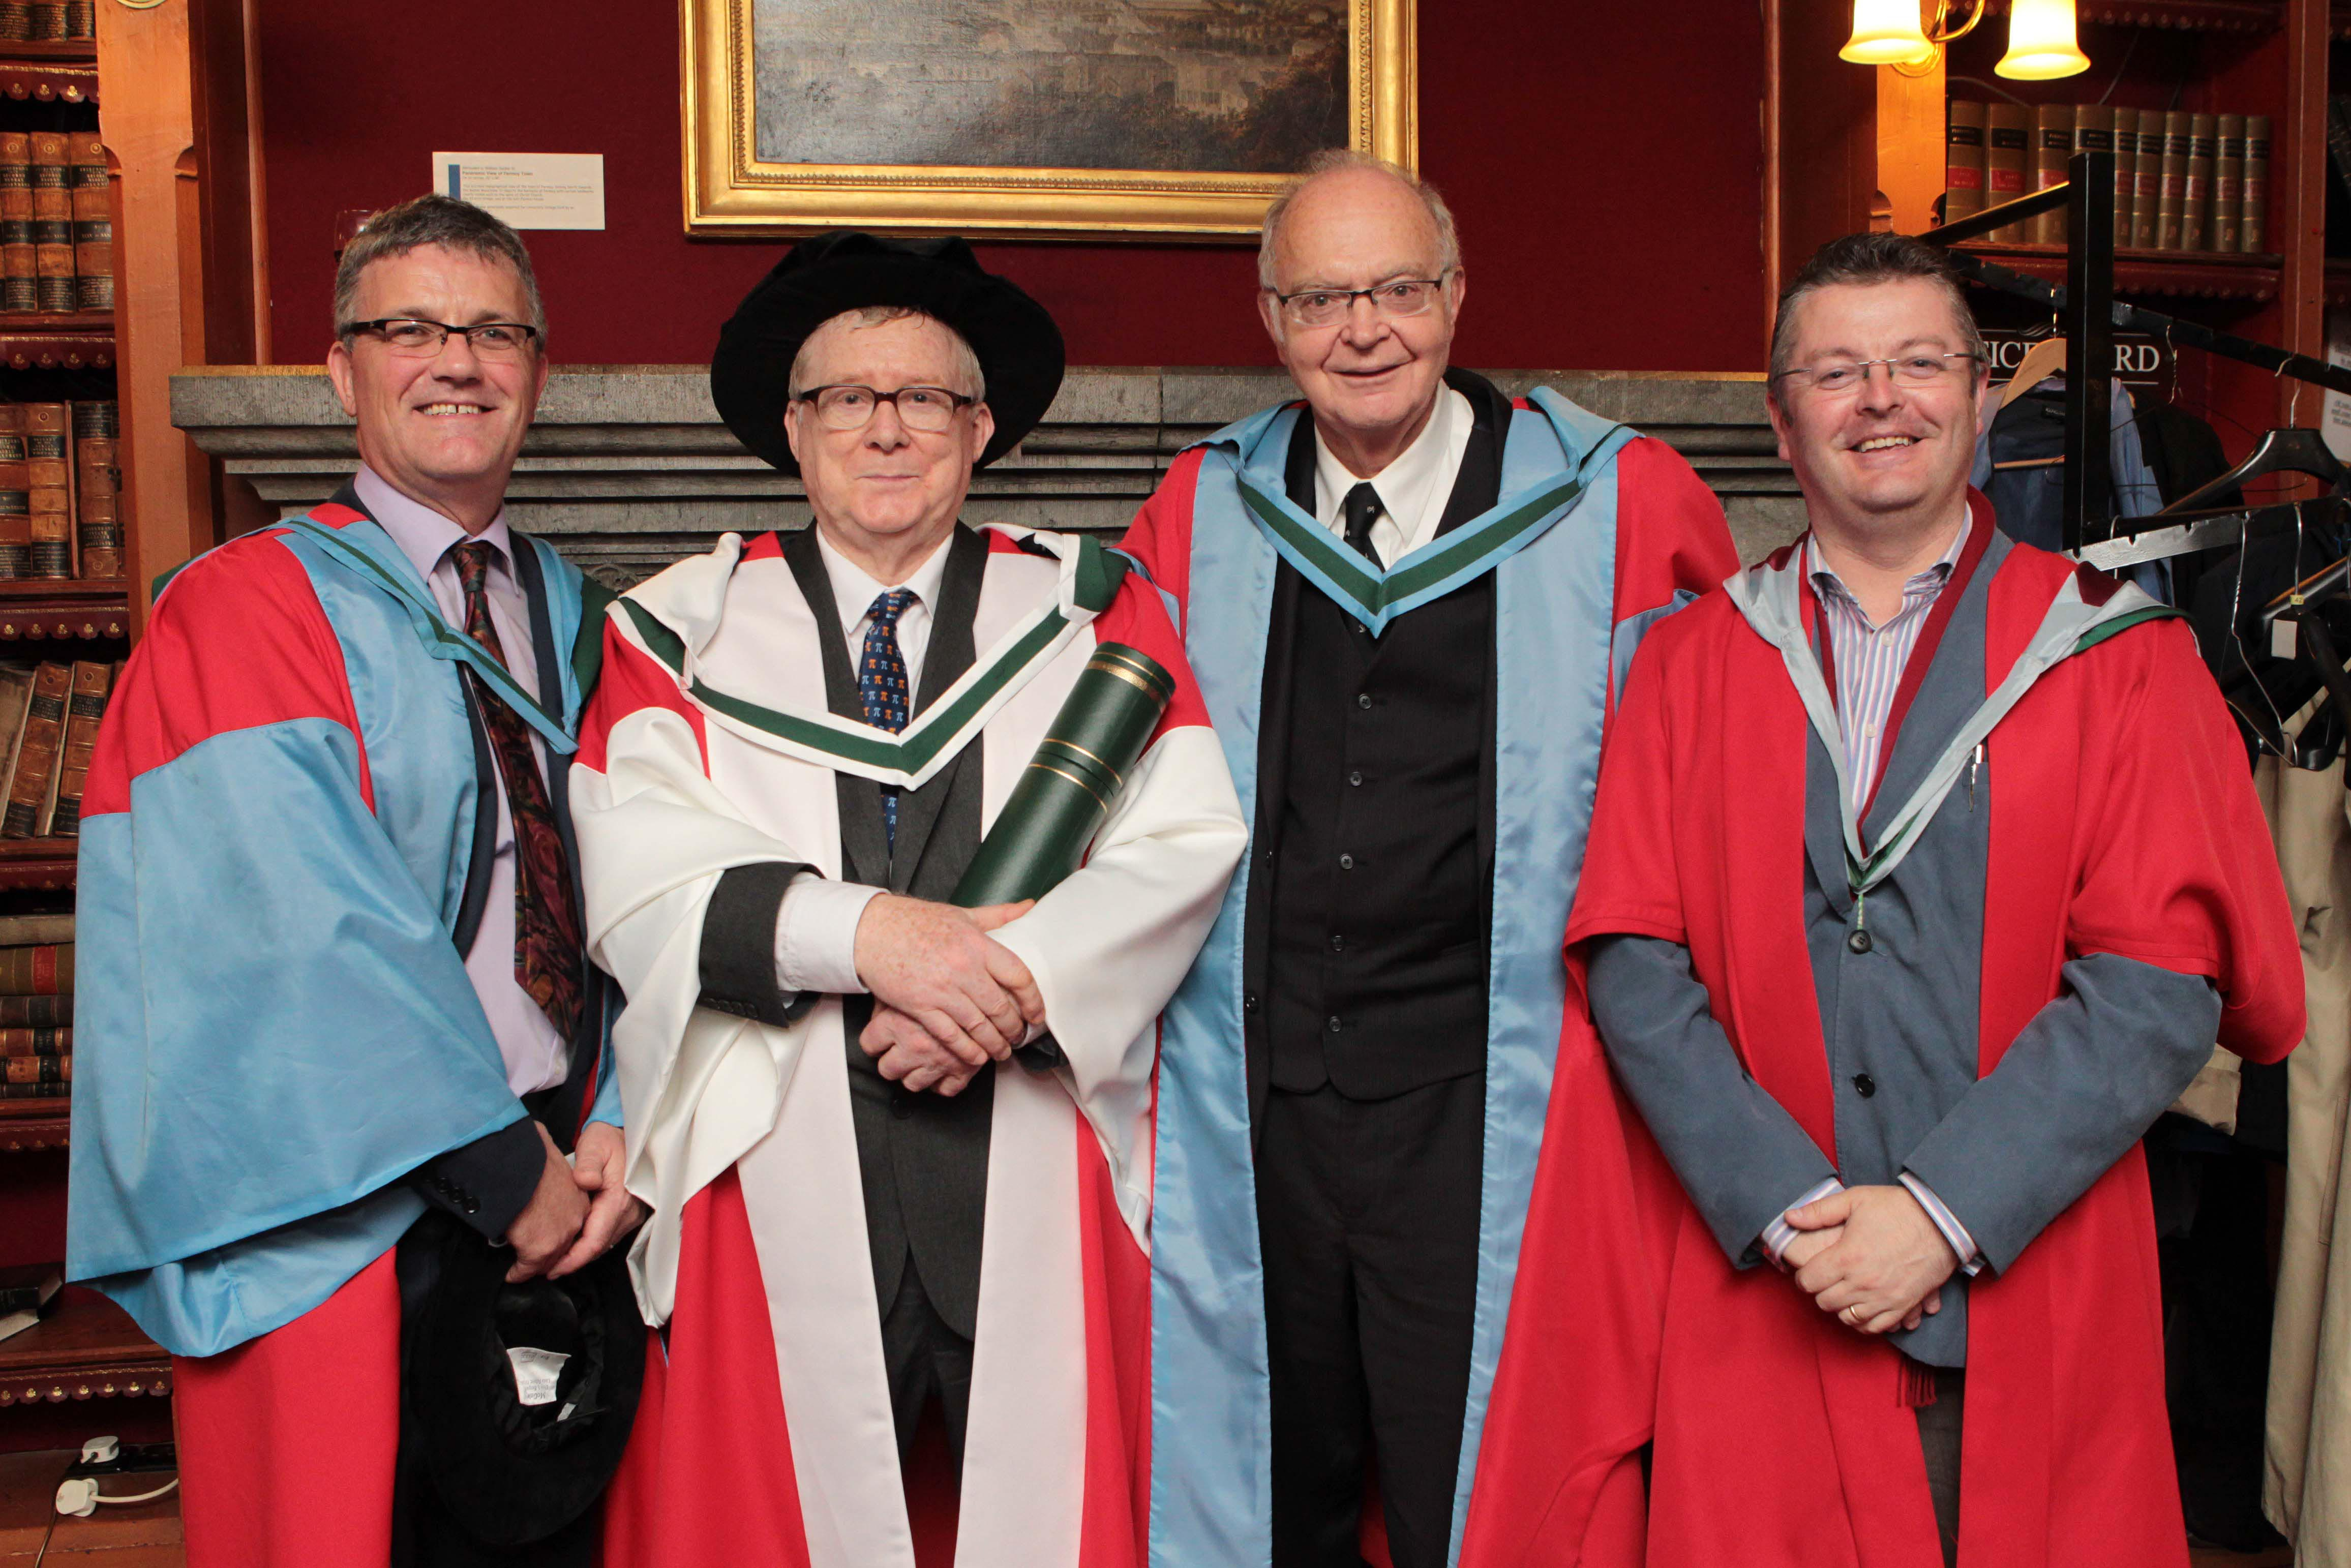 Professors John O'Halloran, Des McHale, Donald Knuth and Barry O'Sullivan pictured at the post-ceremony reception of the honorary conferrings at UCC on George Boole Day. Pic: Diane Cusack